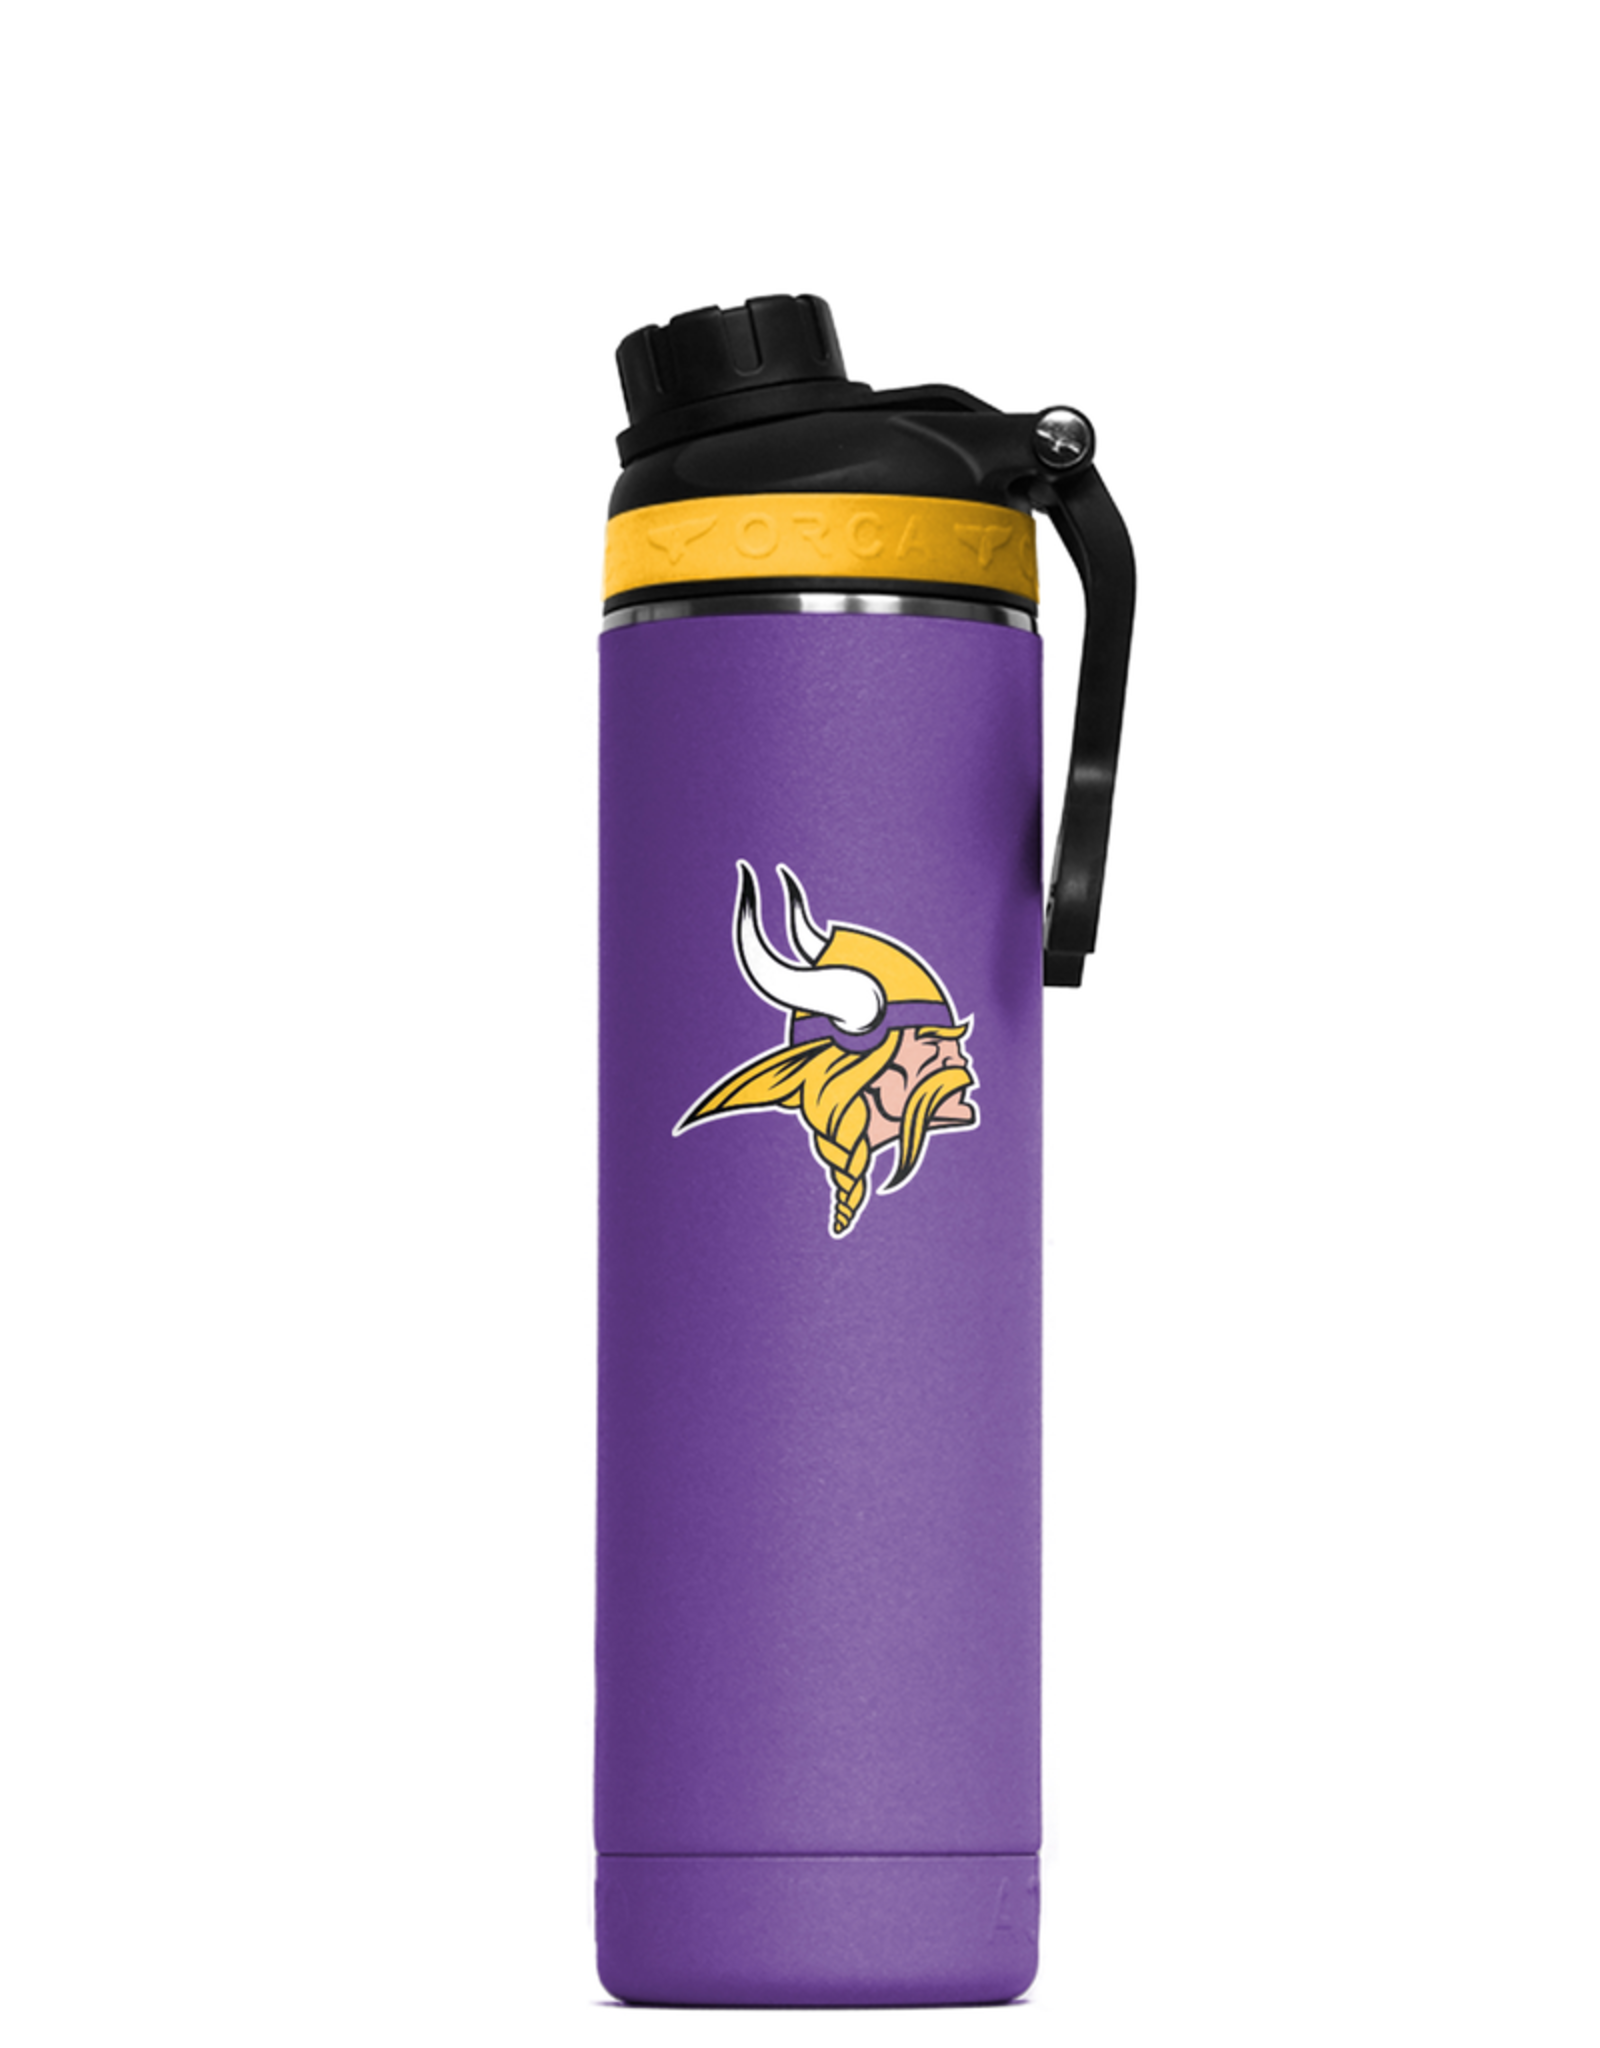 ORCA COOLERS Minnesota Vikings Orca 22oz Hydra Bottle